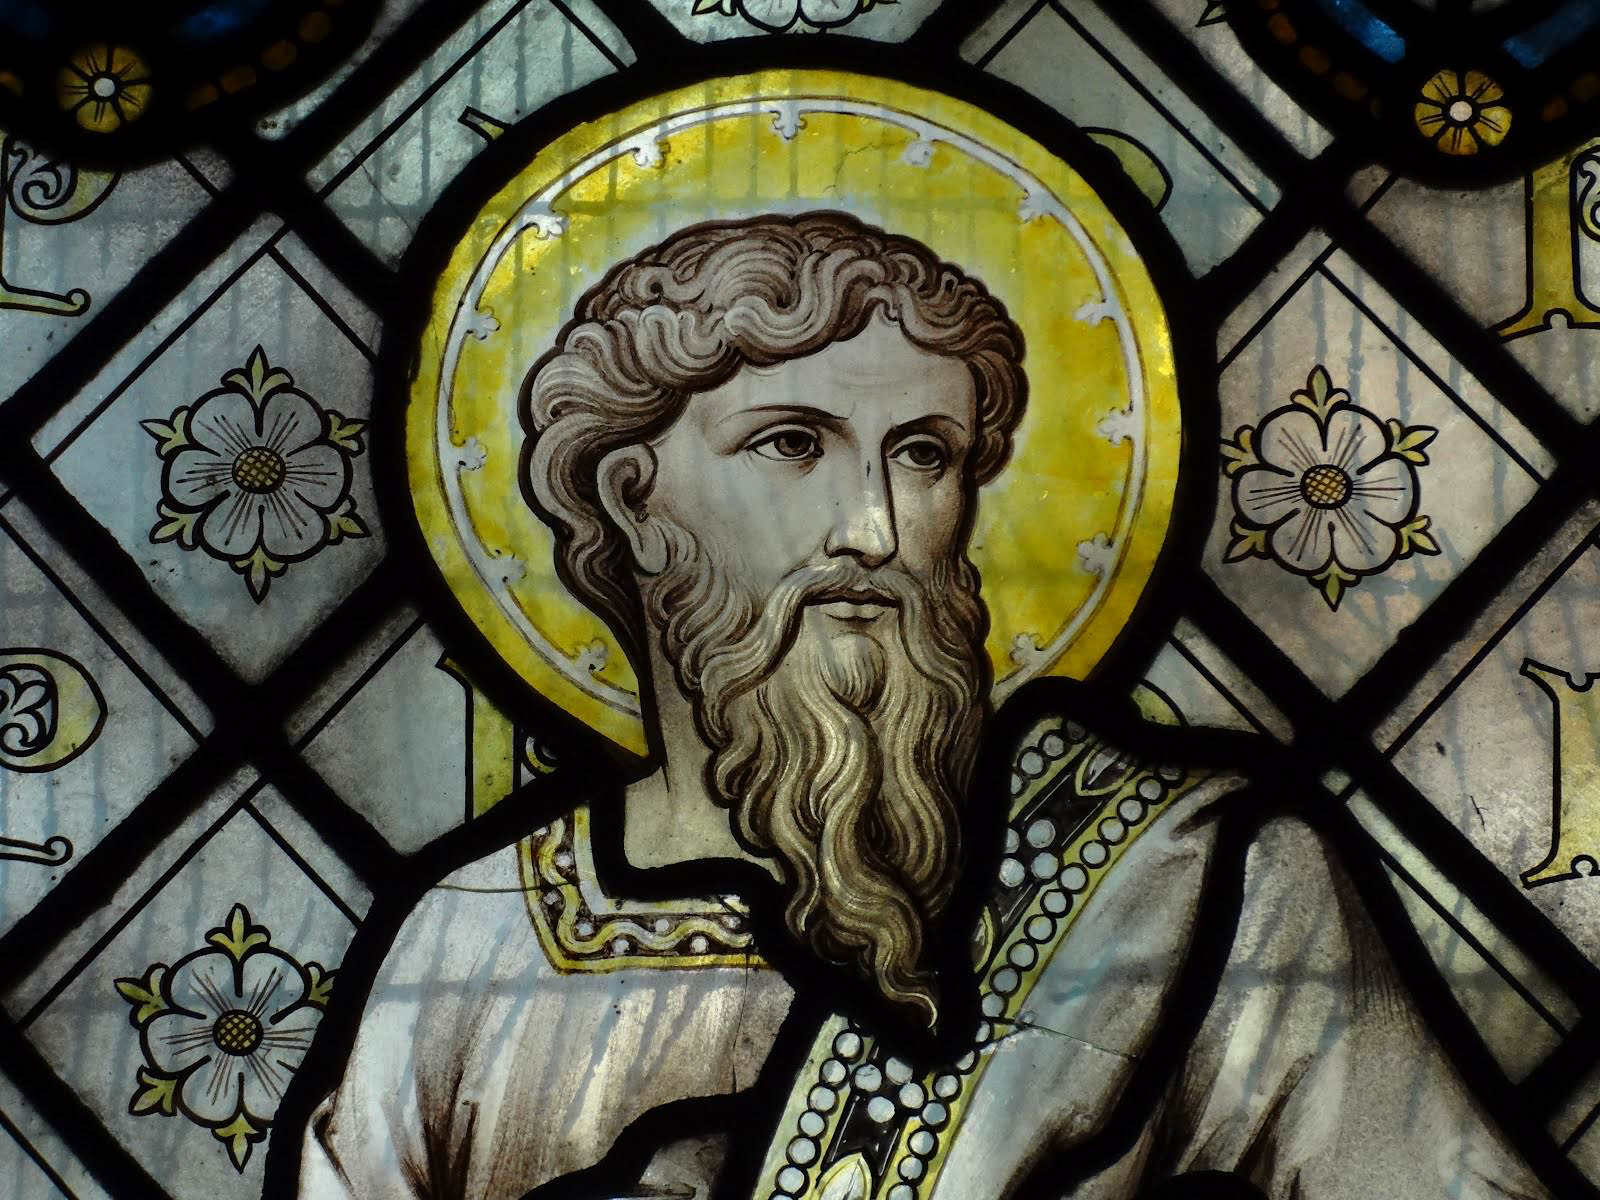 Paul's Crown of Glory – John Chrysostom